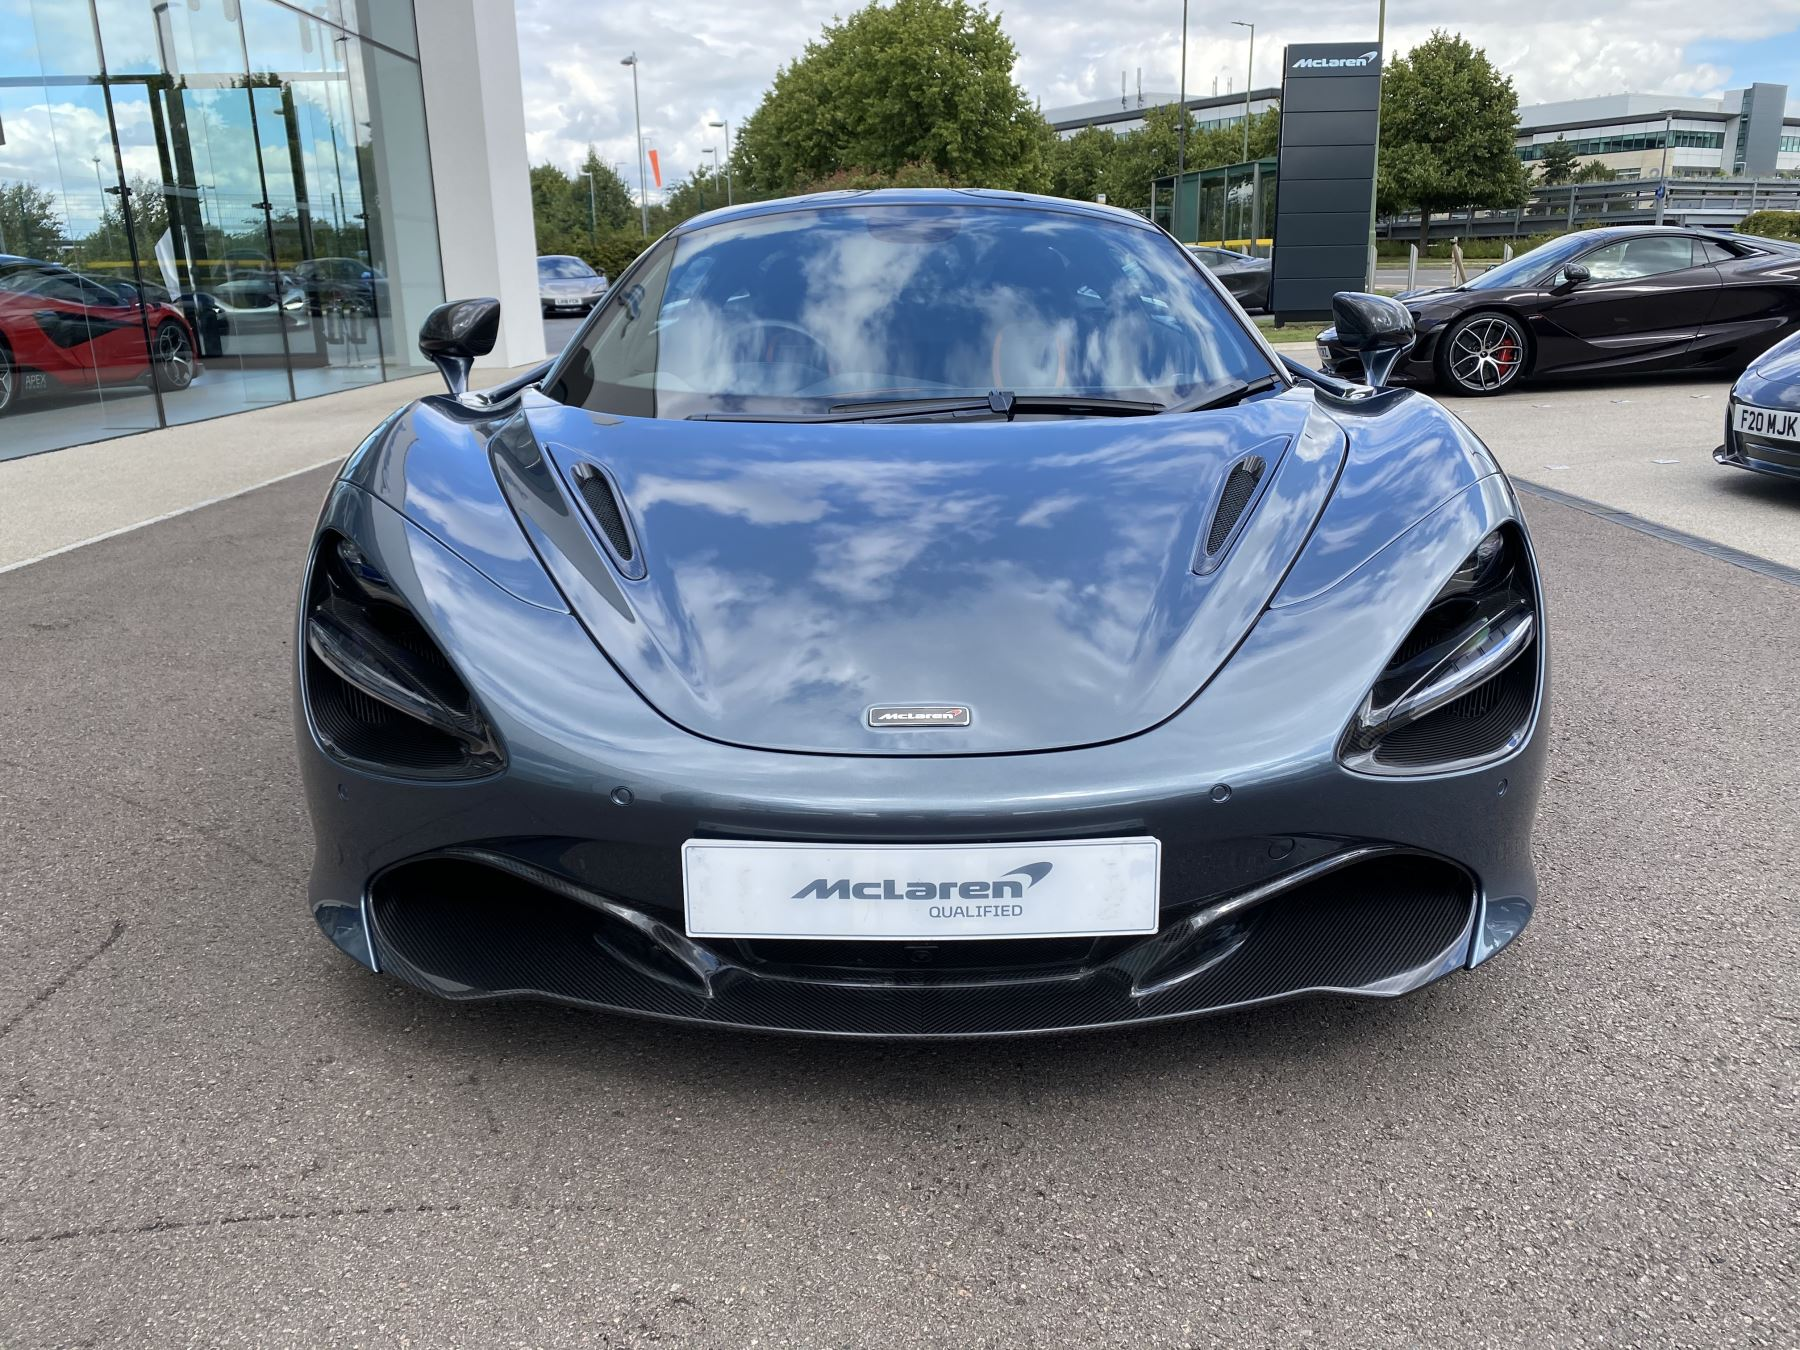 McLaren 720S Coupe  image 2